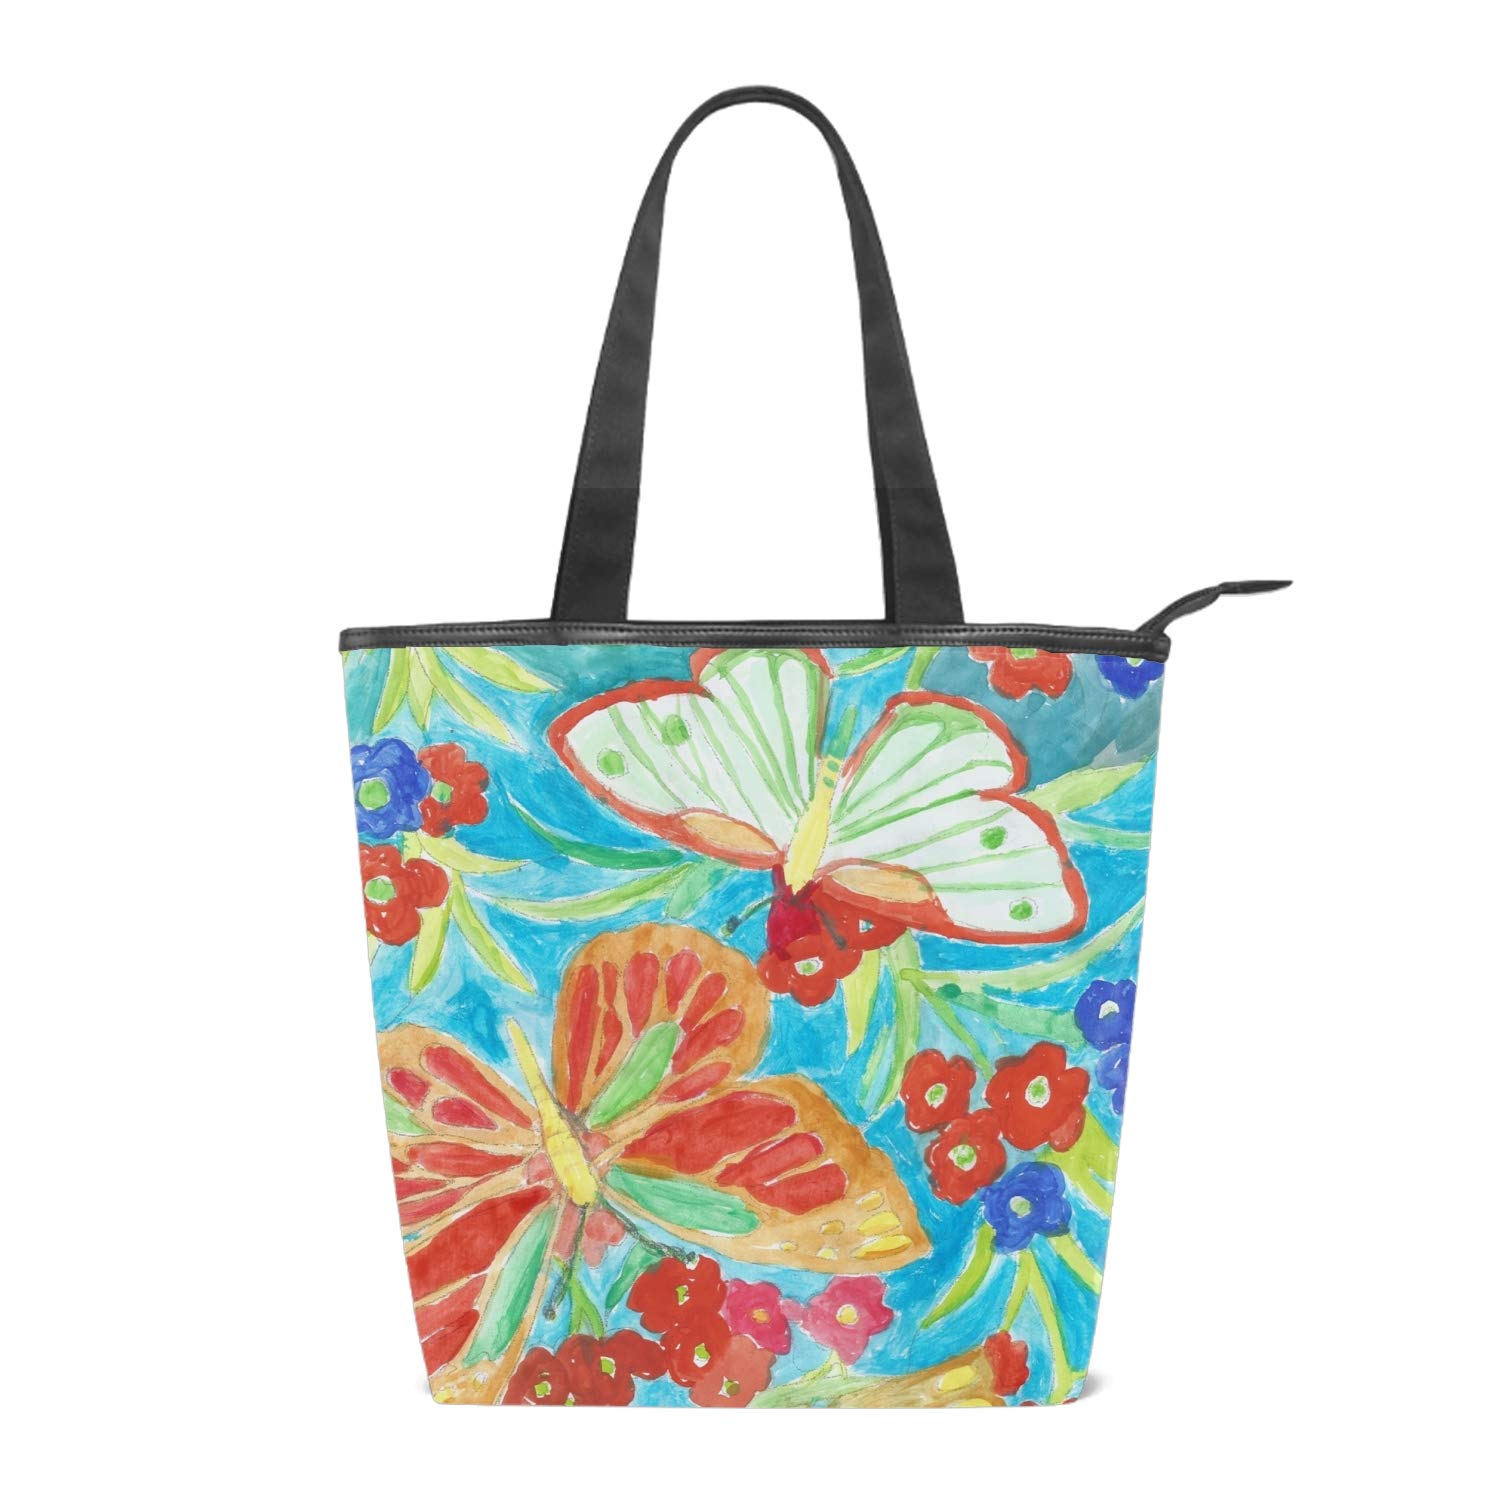 Womens Canvas Tote Bag Pizza Pattern Shopping Bag with Zipper Pocket Inside and Long Handles